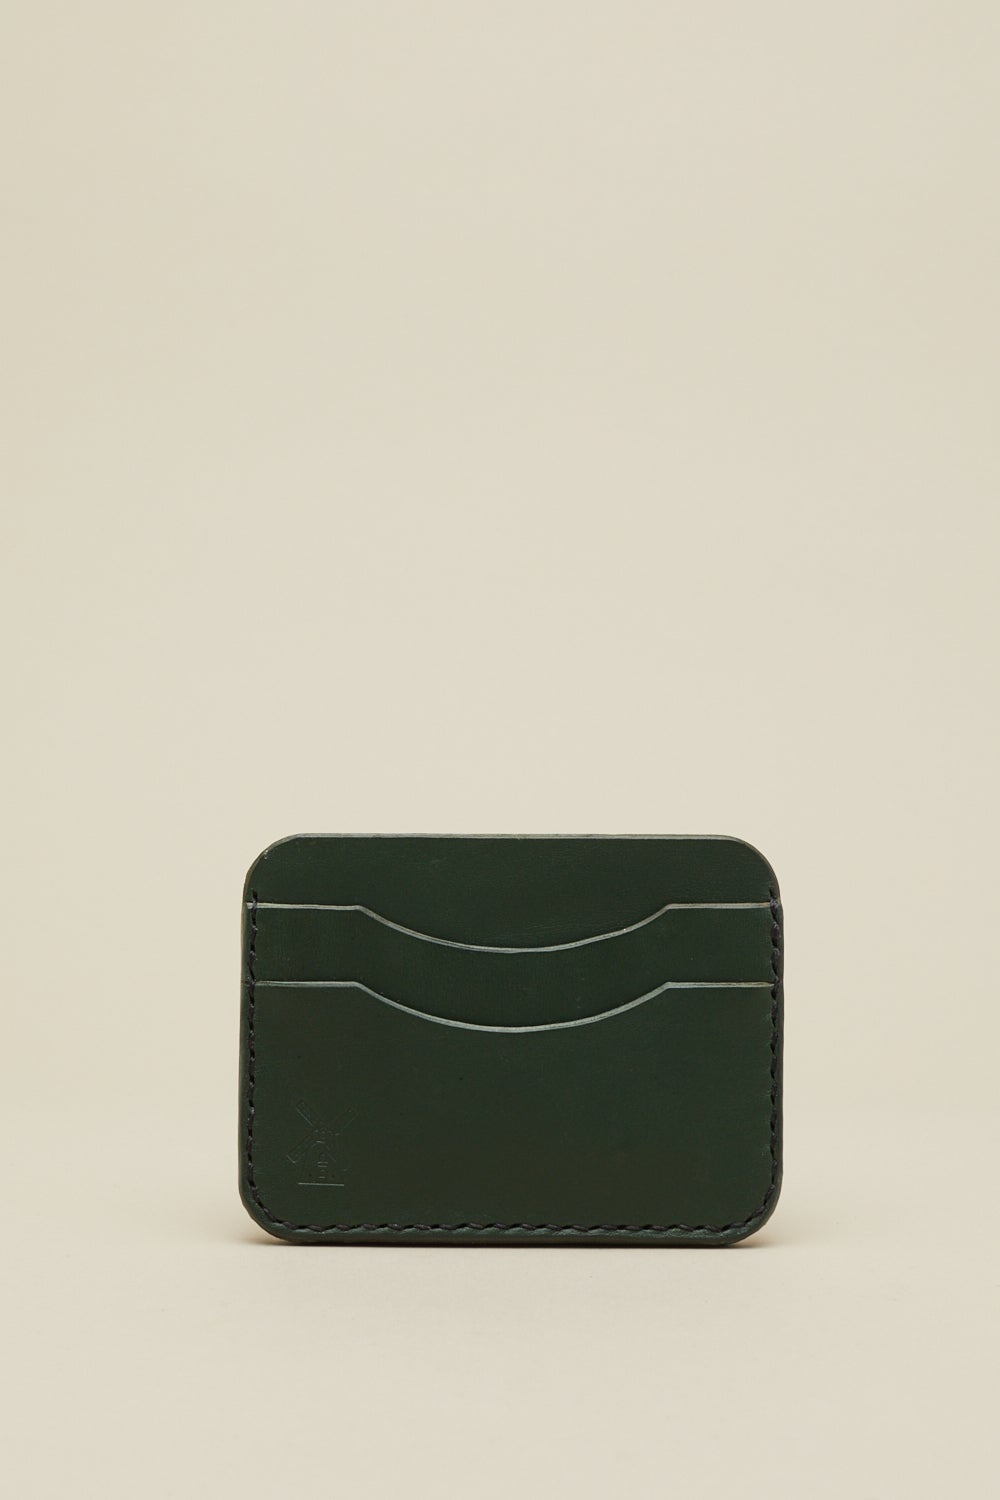 Image of Double Card Holder in Racing Green